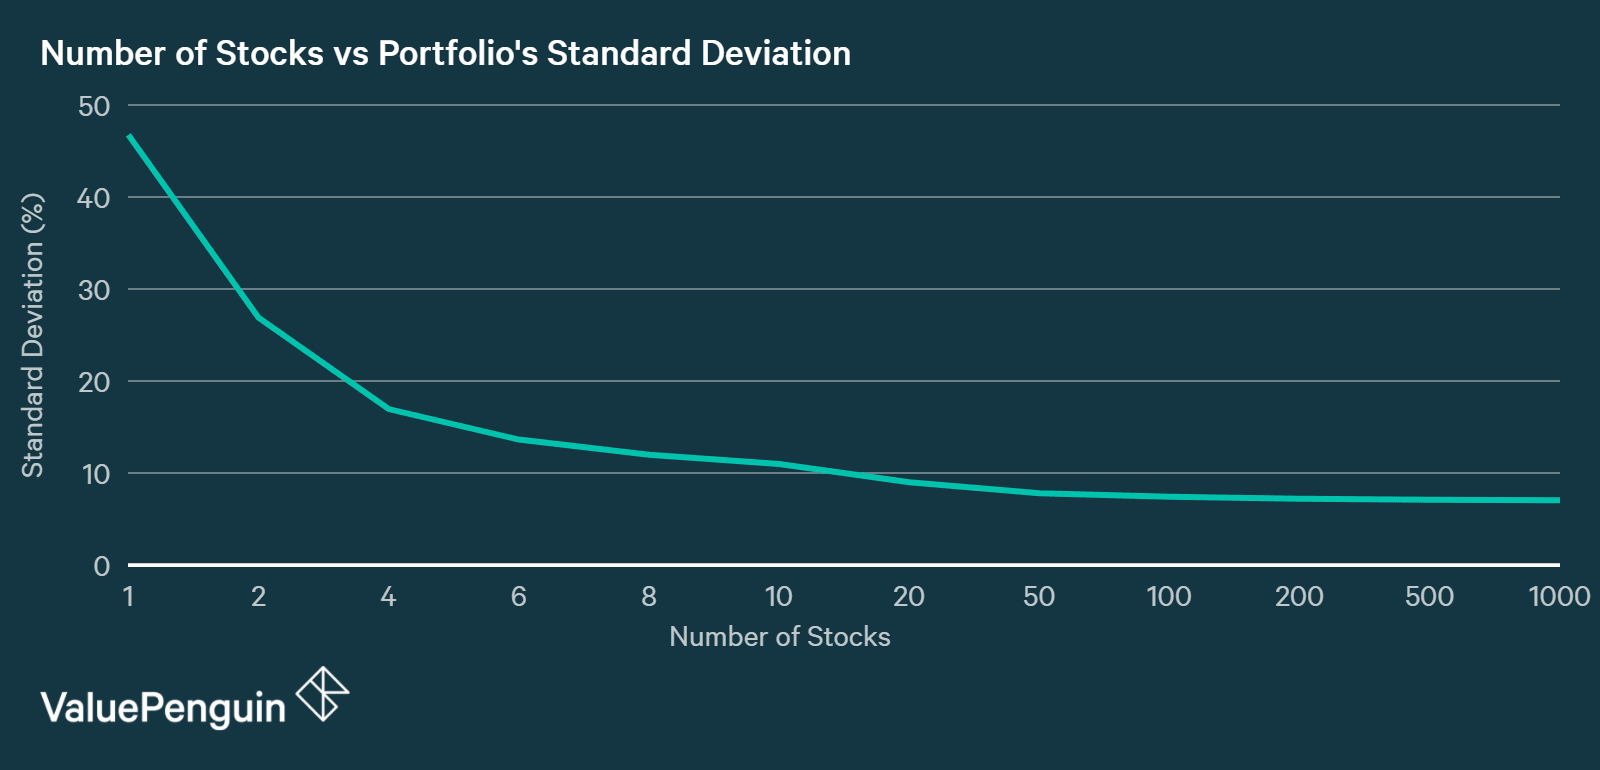 This graph shows the number of stocks compared to the portfolio's standard deviation